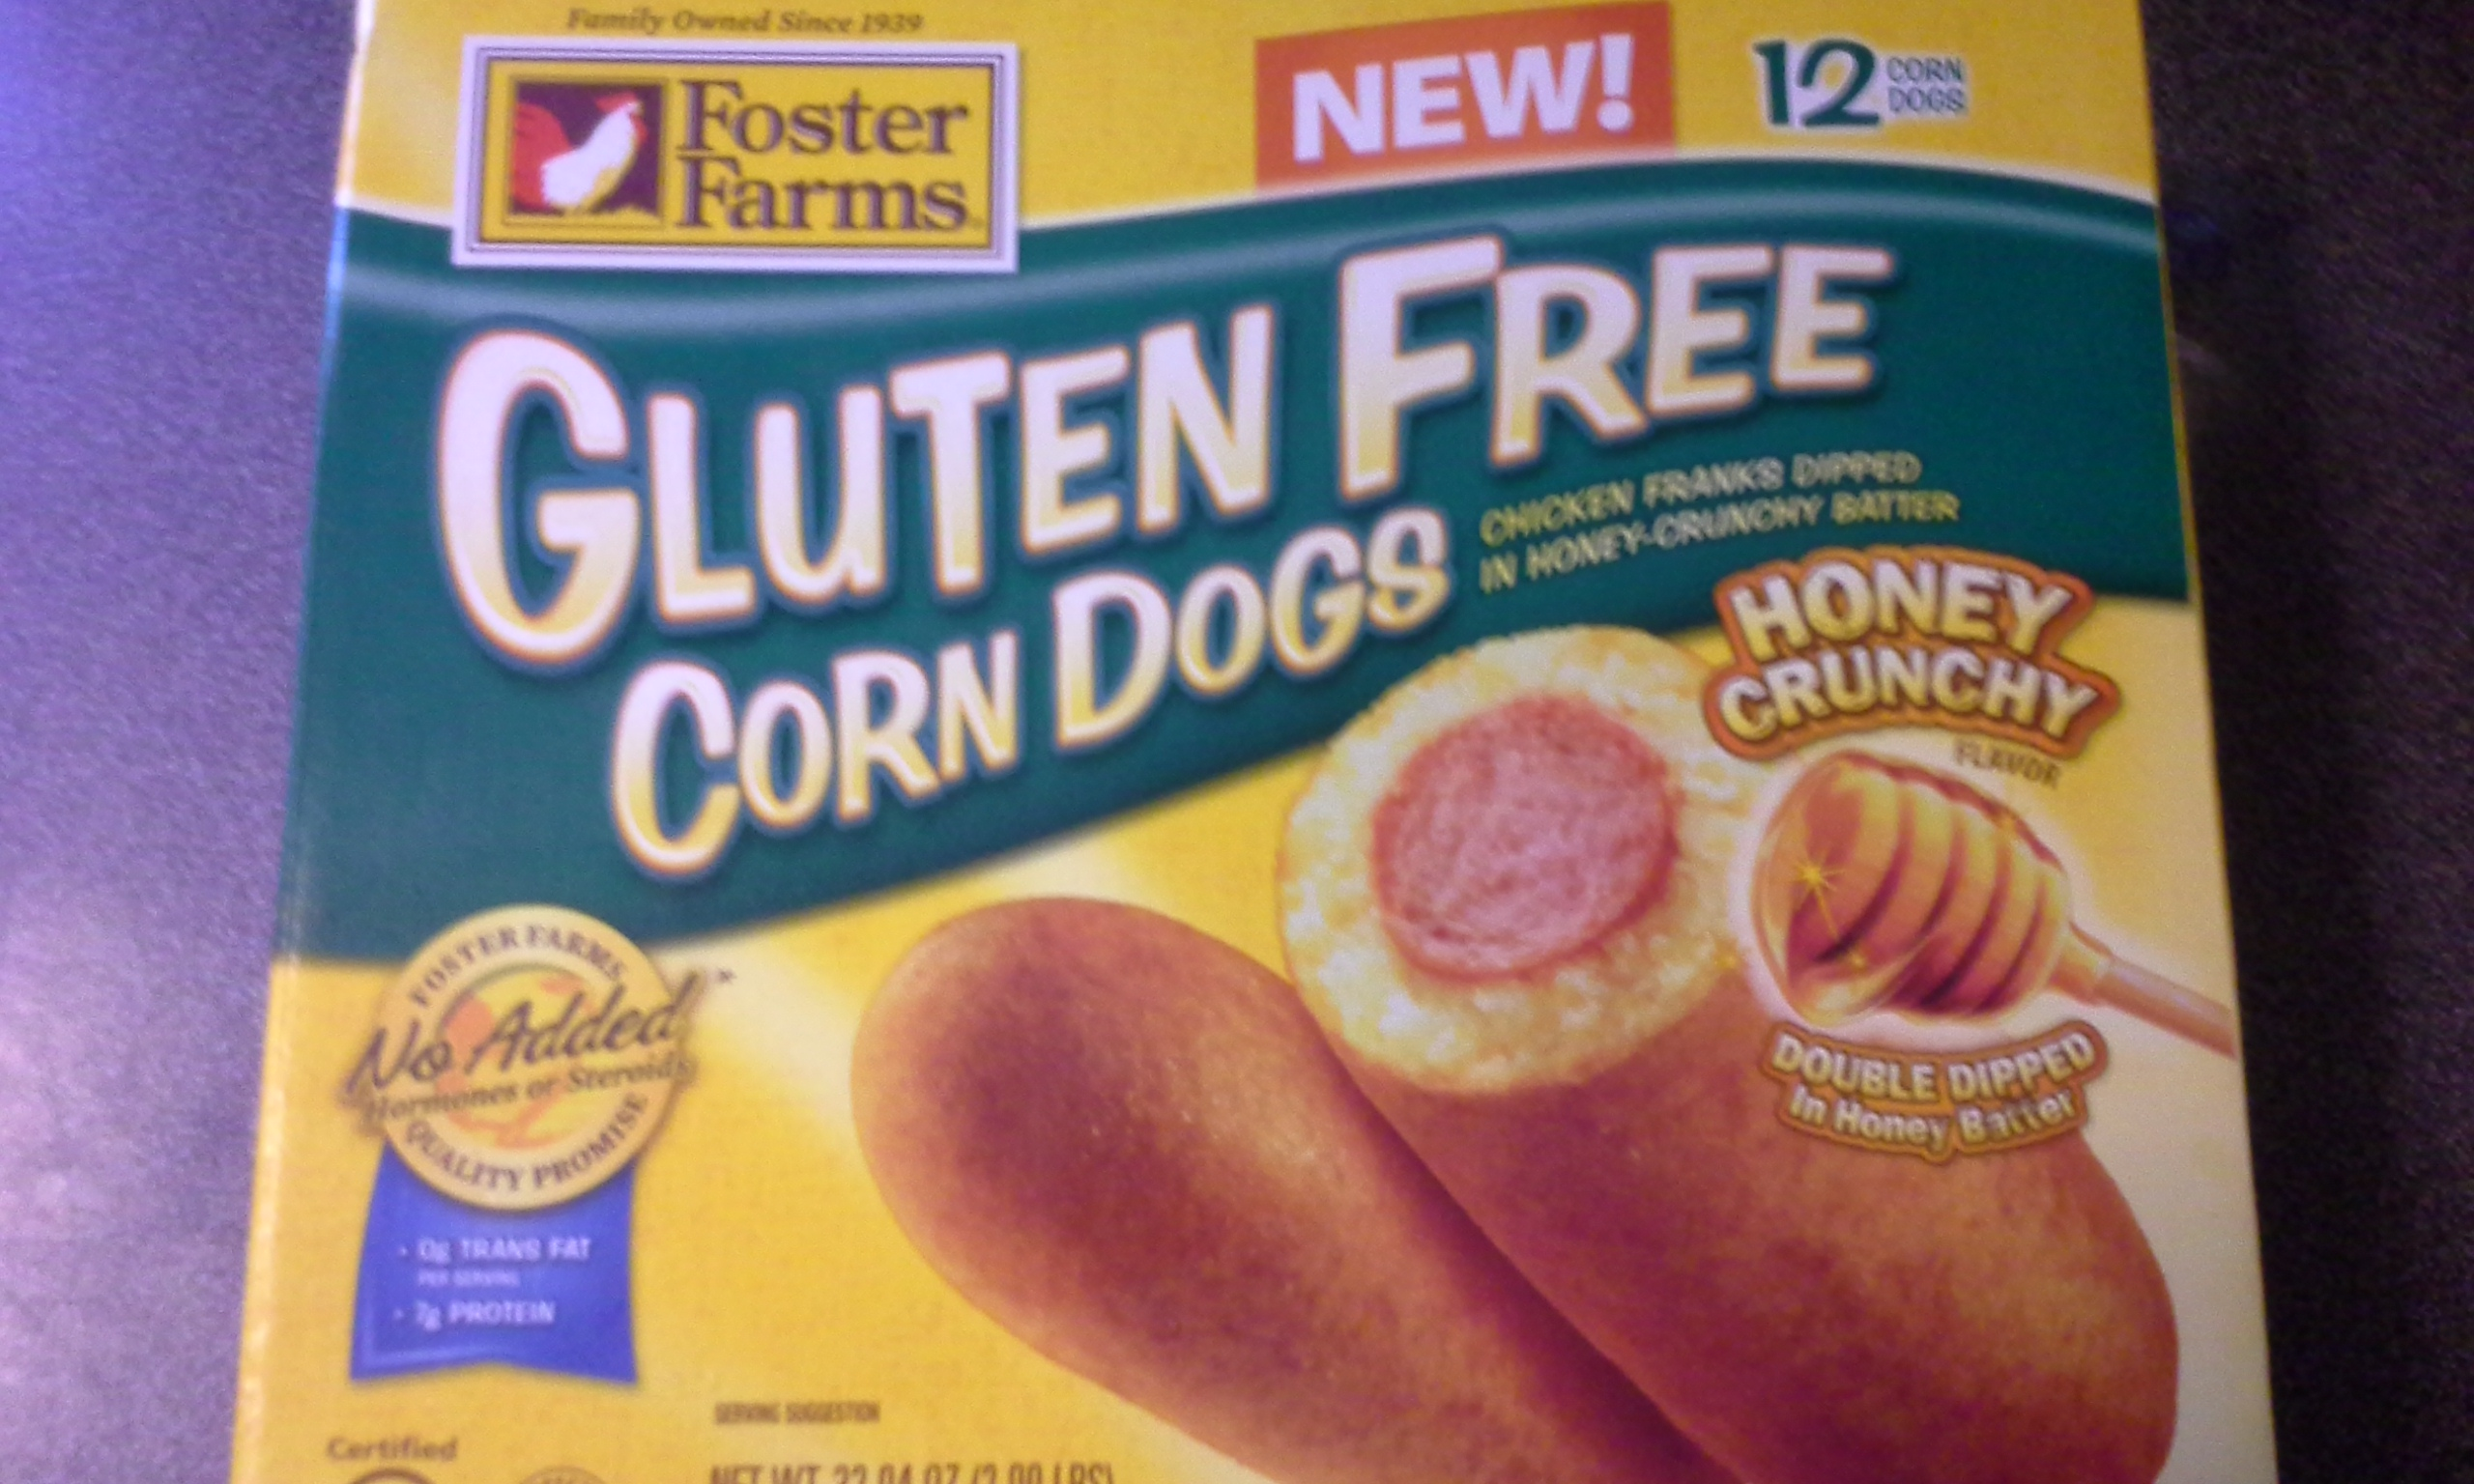 Review Amp Giveaway Foster Farms Gluten Free Corn Dogs